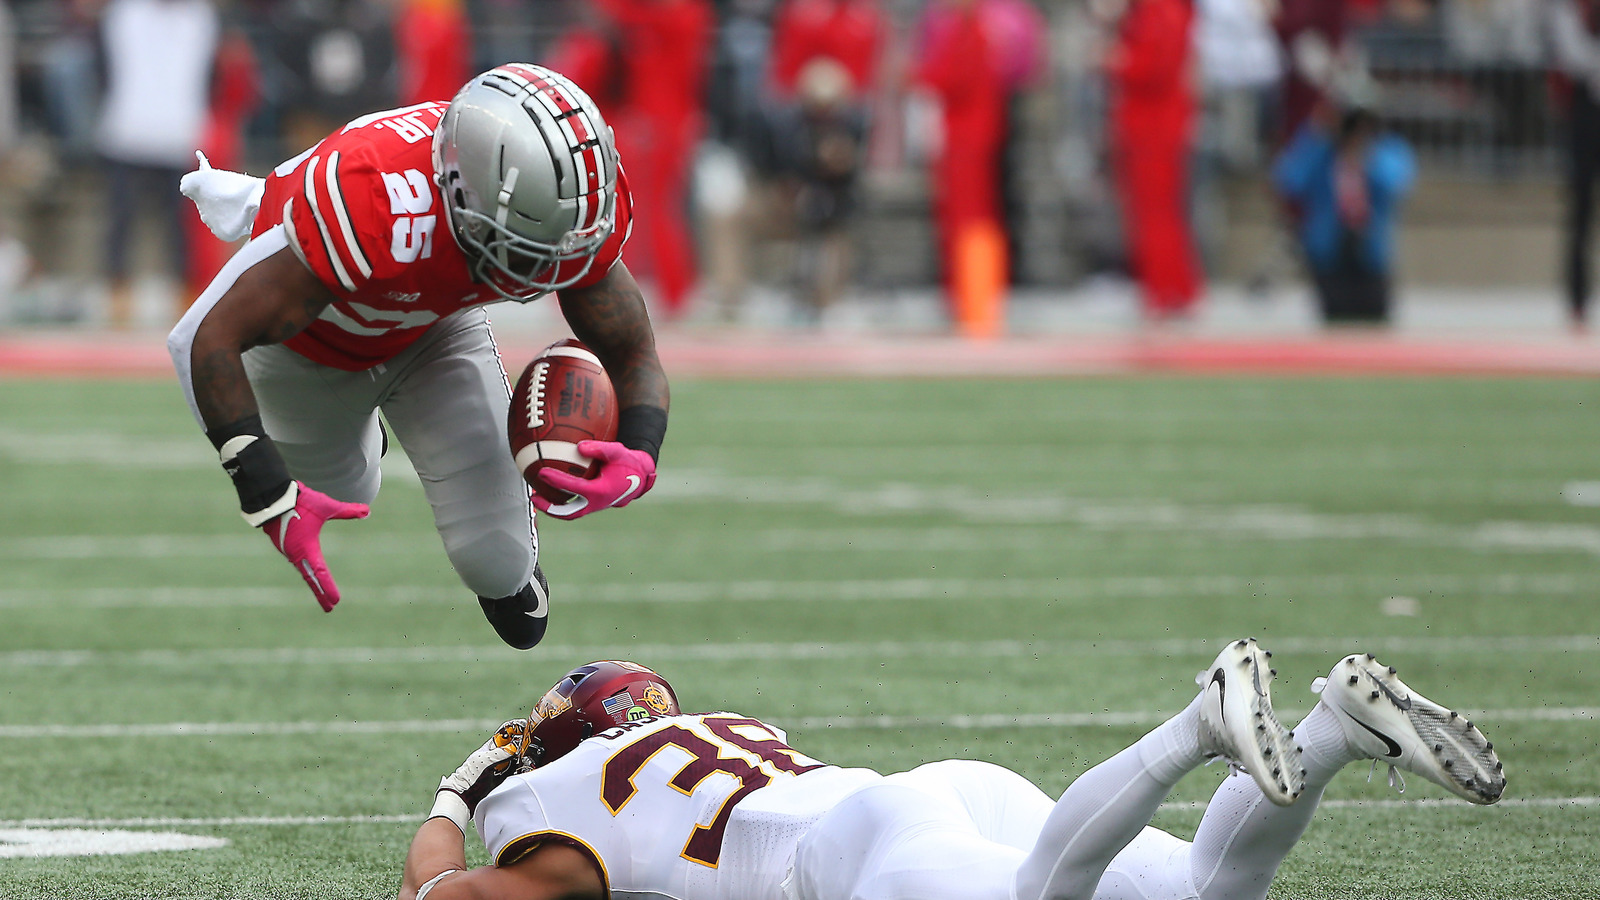 Ohio State Score Watch Ohio State Takes Advantage Of Fortunate Spot To Score